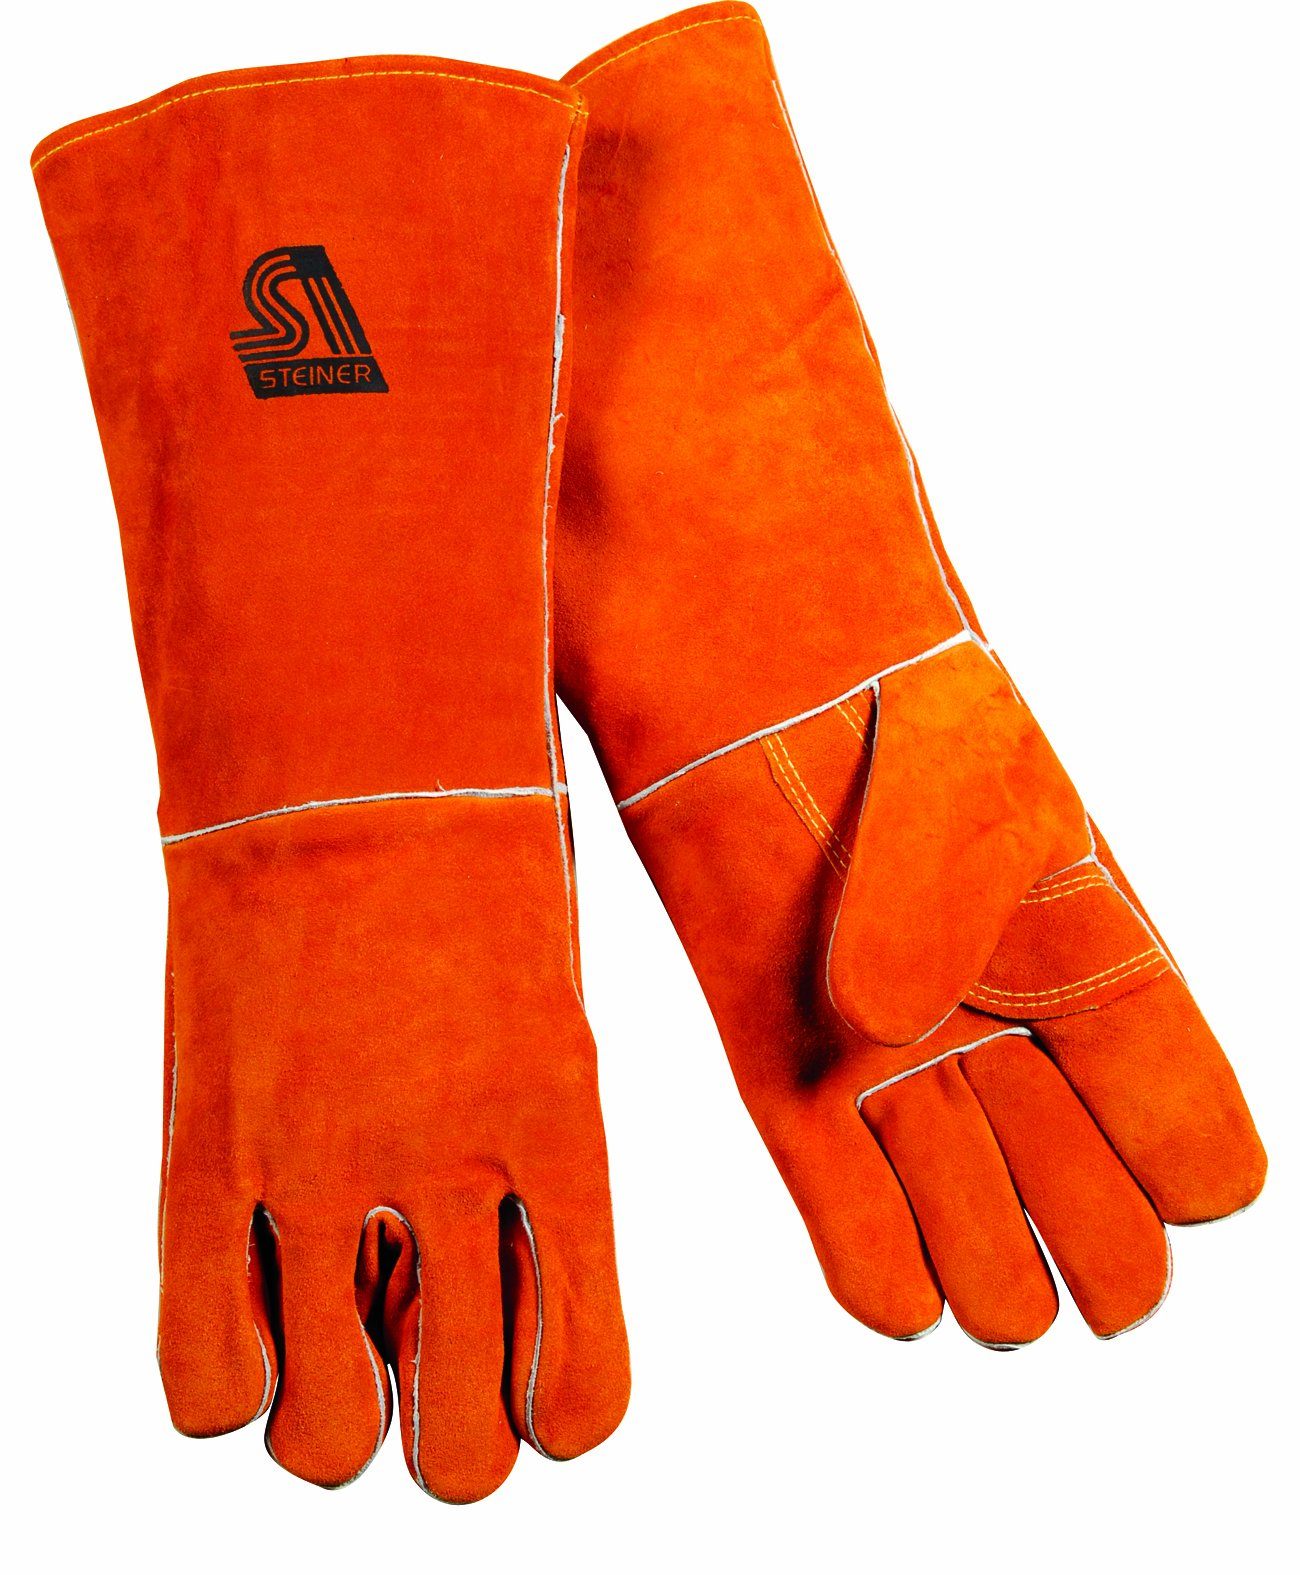 Steiner 21918-L Welding Gloves, Brown Y-Series 18-Inch Length Shoulder Split Cowhide, Foam Lined, Large